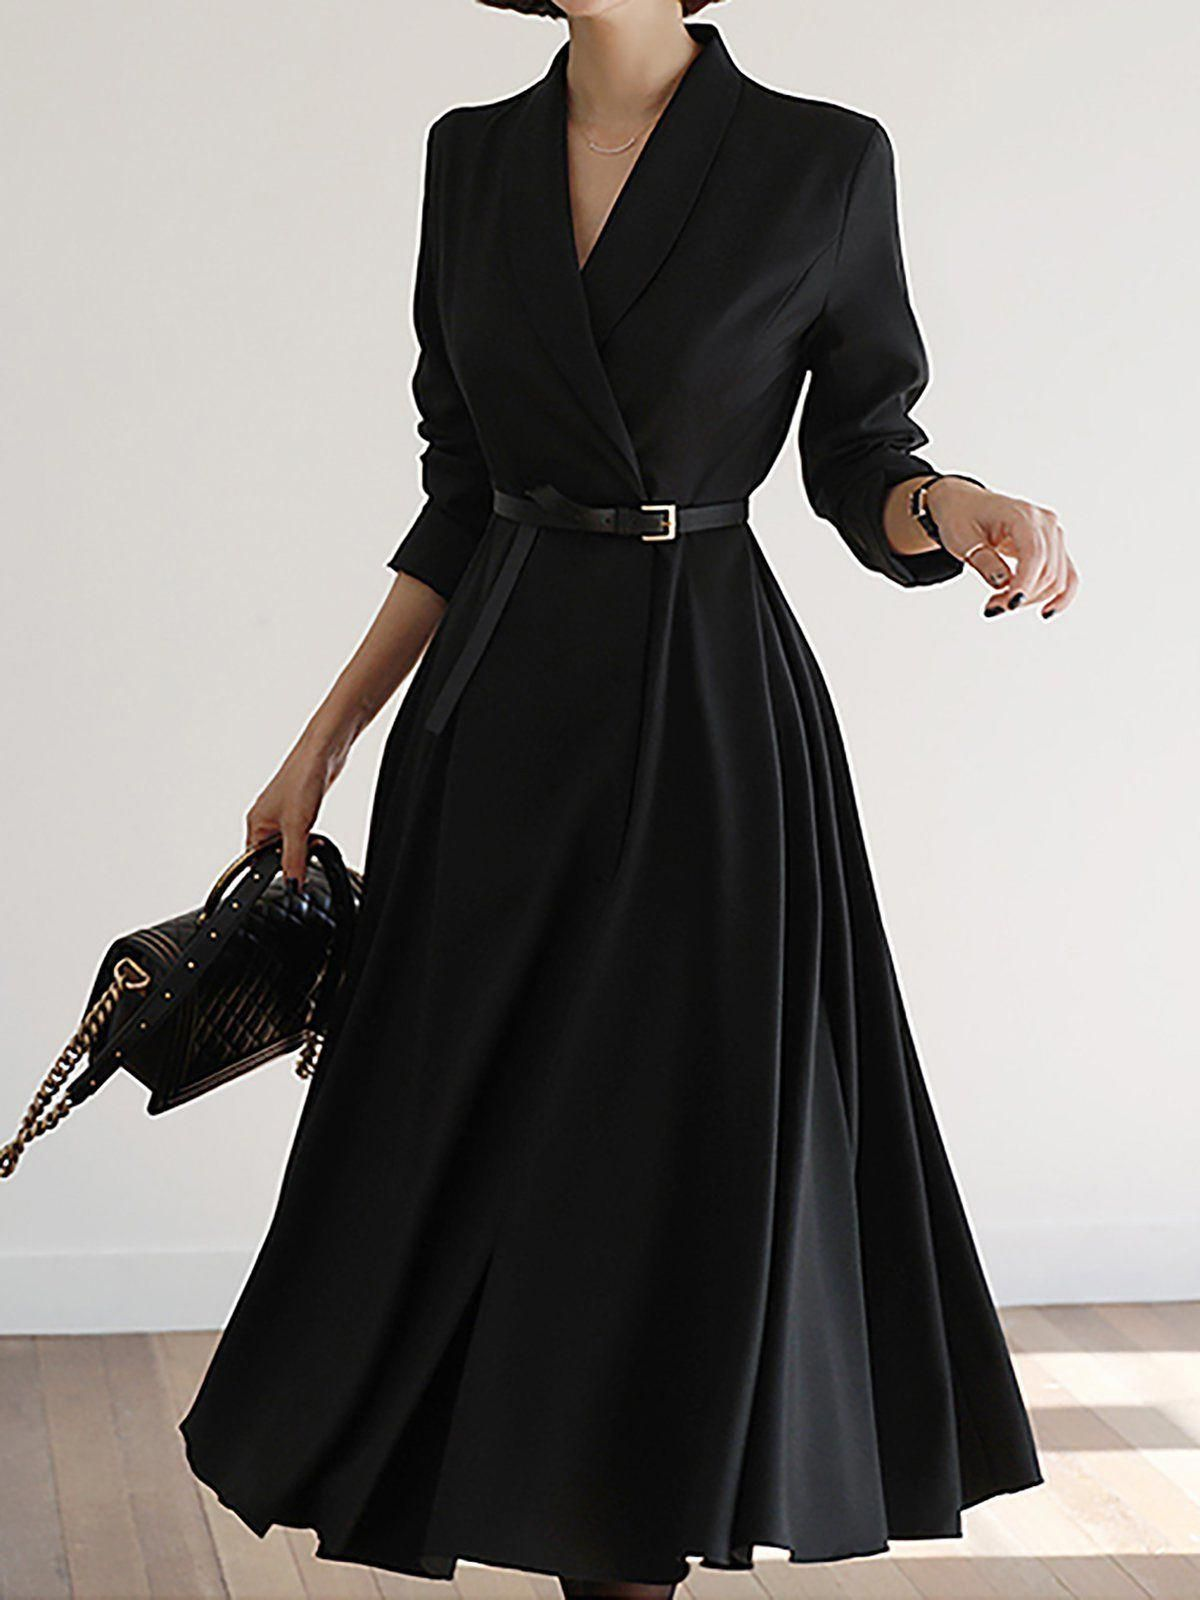 Fantastic #dresses are available on our web pages. look at this